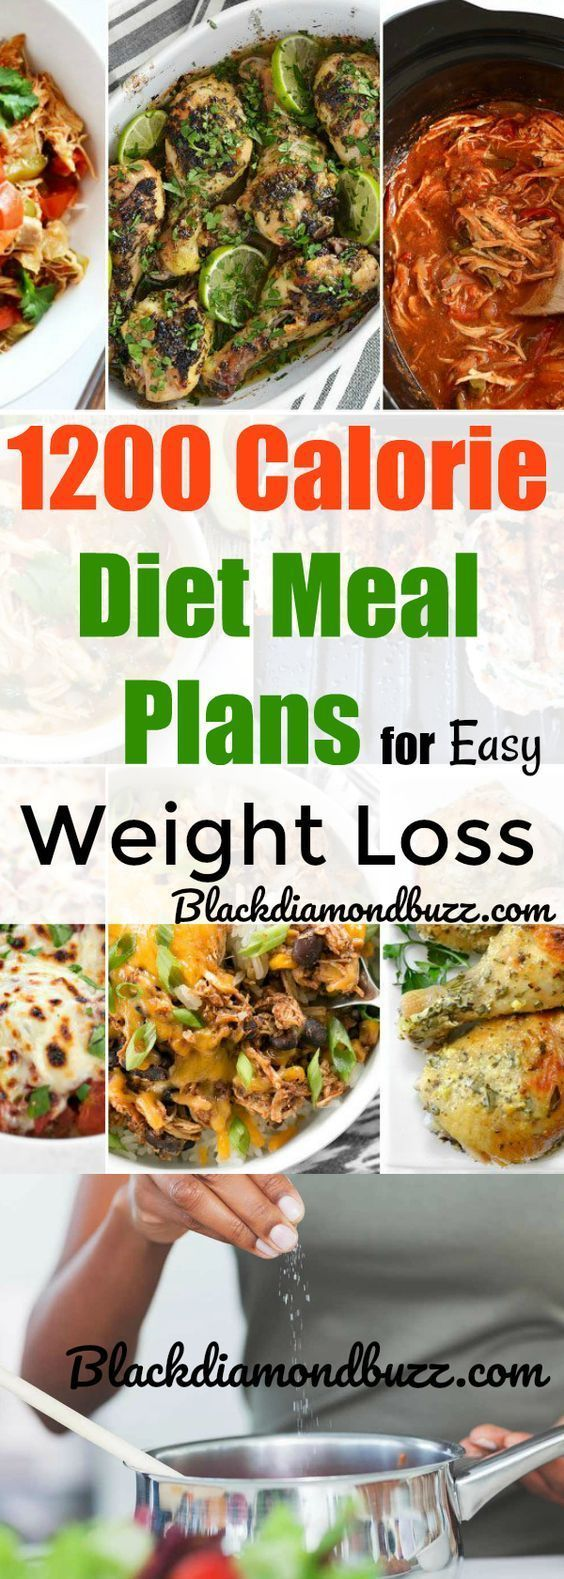 1200 Calorie Diet Meal Plans Low Carb For Weight Loss ...